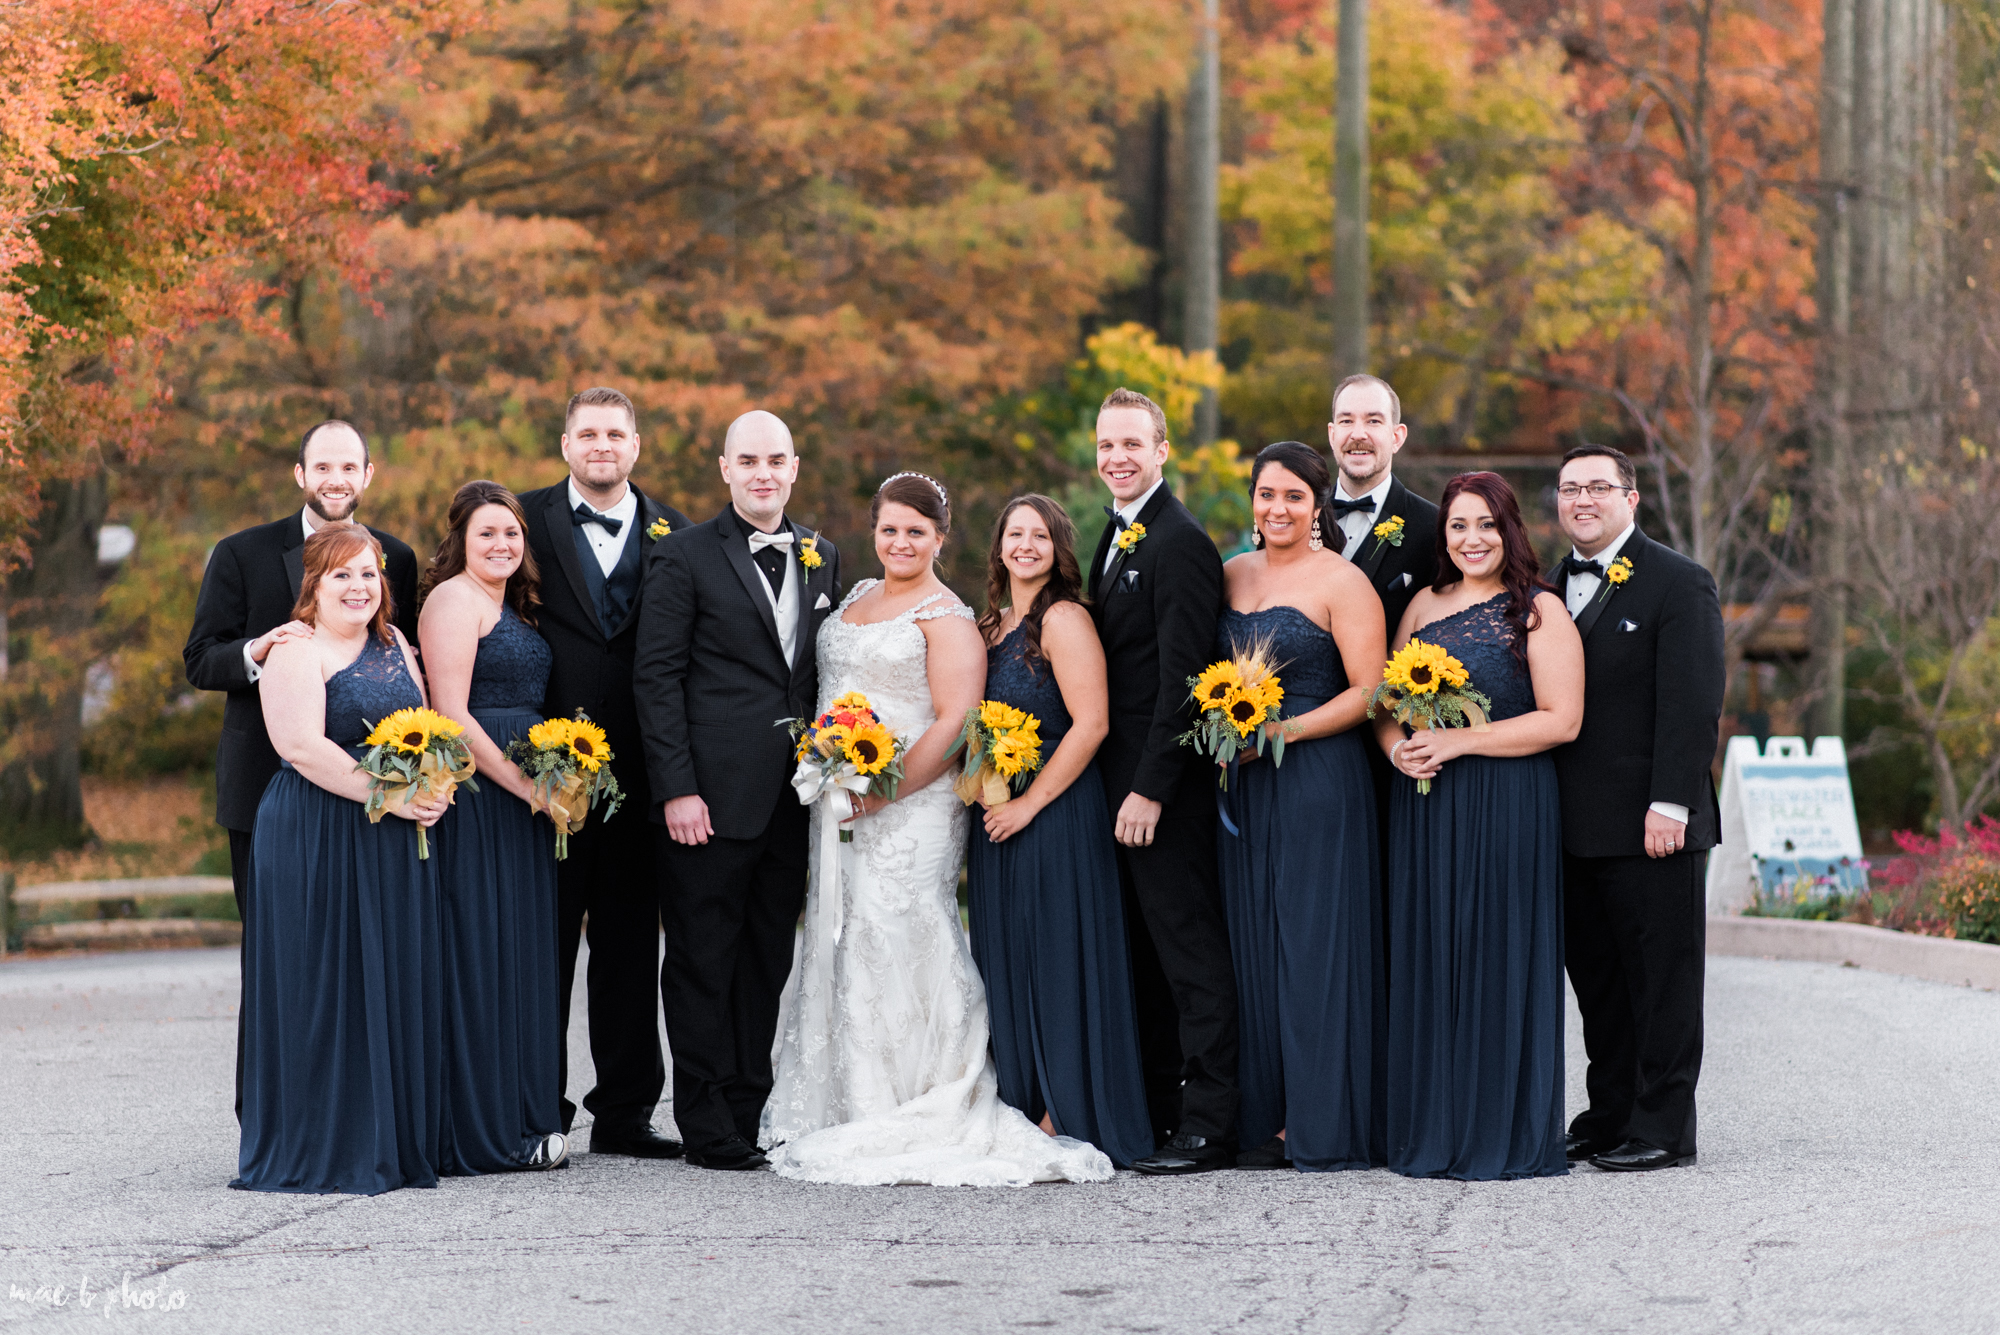 kaylynn and matt's fall zoo wedding at the cleveland metroparks zoo at stillwater place-1.jpg